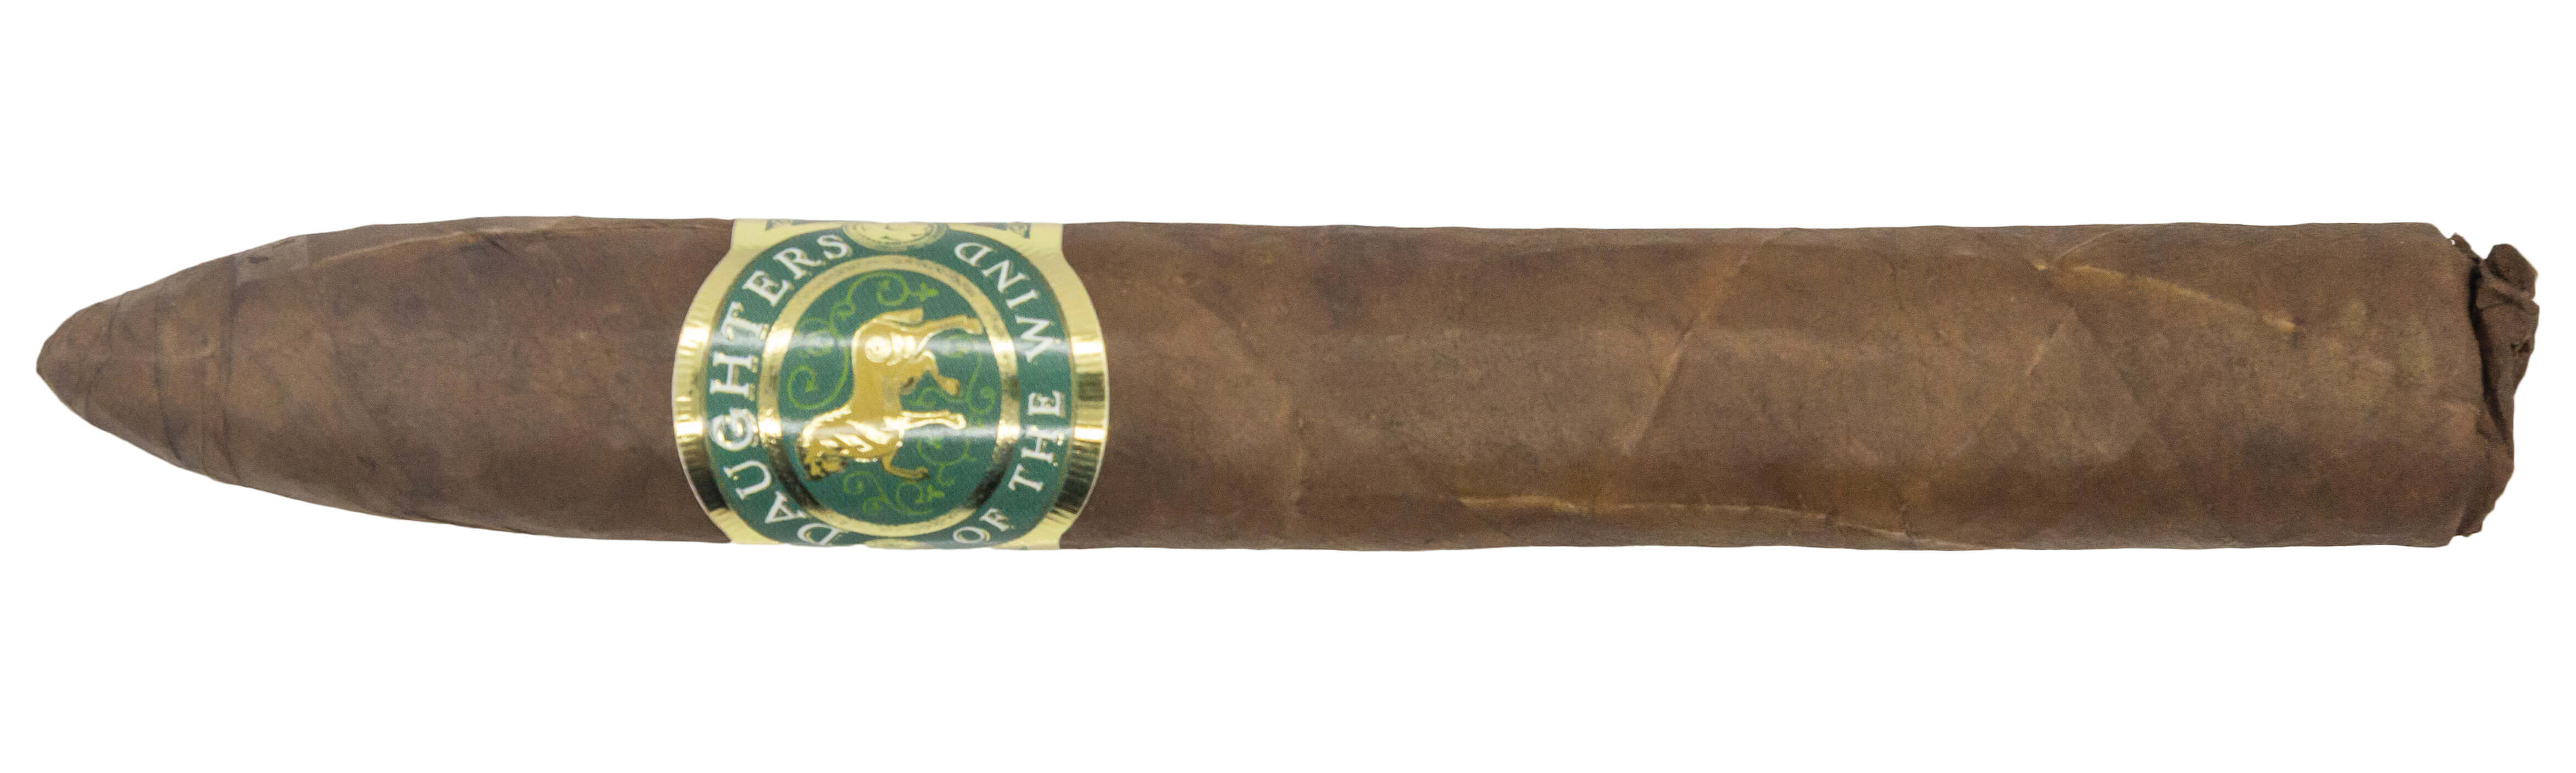 Blind Cigar Review: Casdagli | Daughters of the Wind Calico